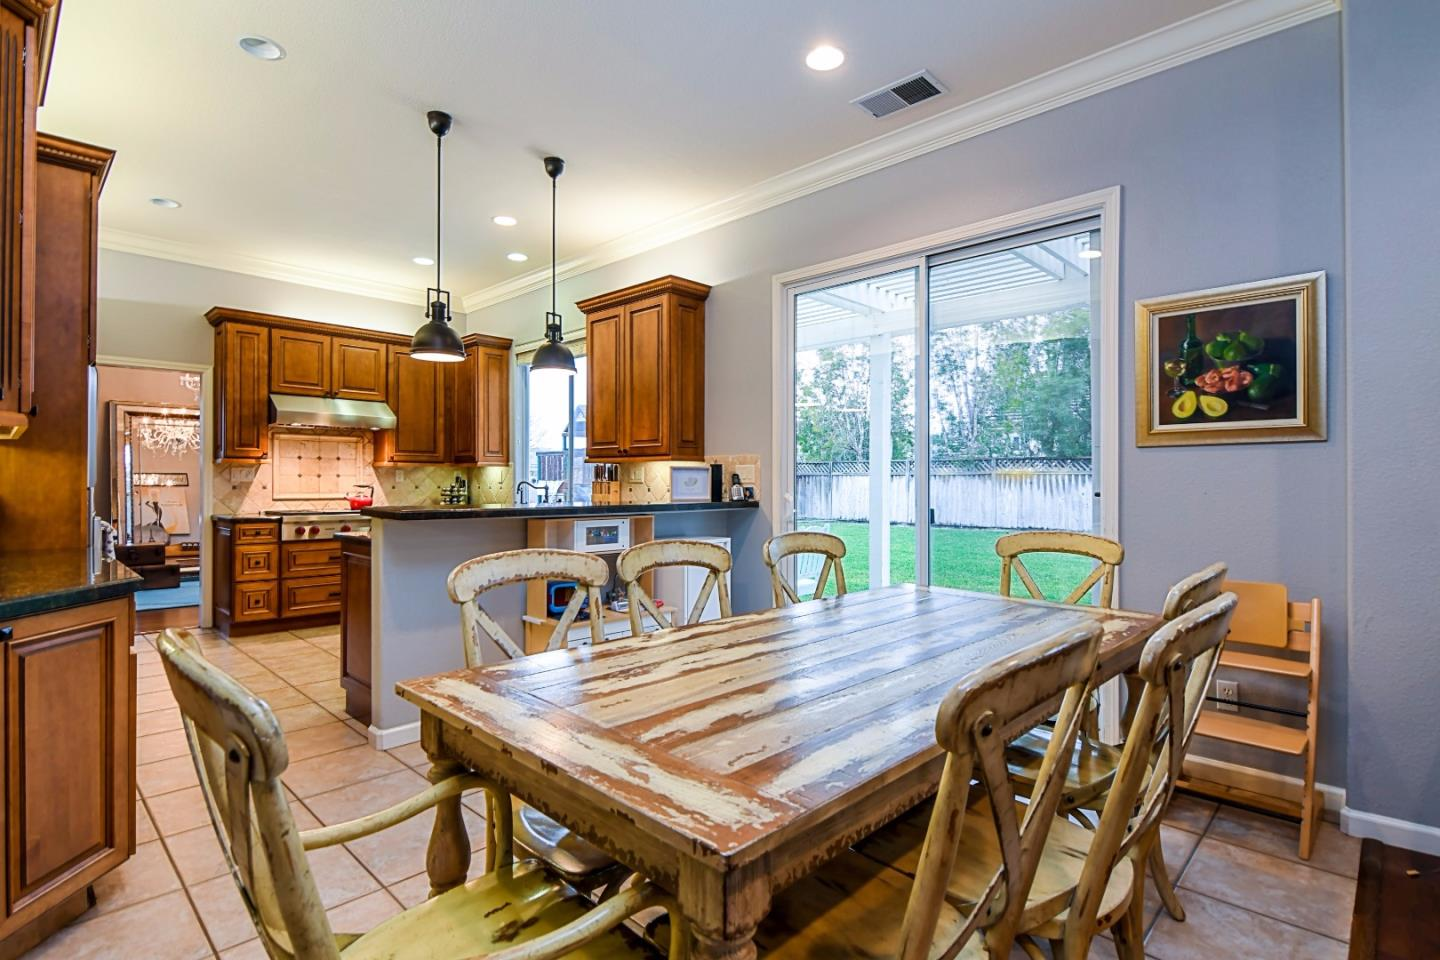 Additional photo for property listing at 5801 Firestone Ct  SAN JOSE, CALIFORNIA 95138